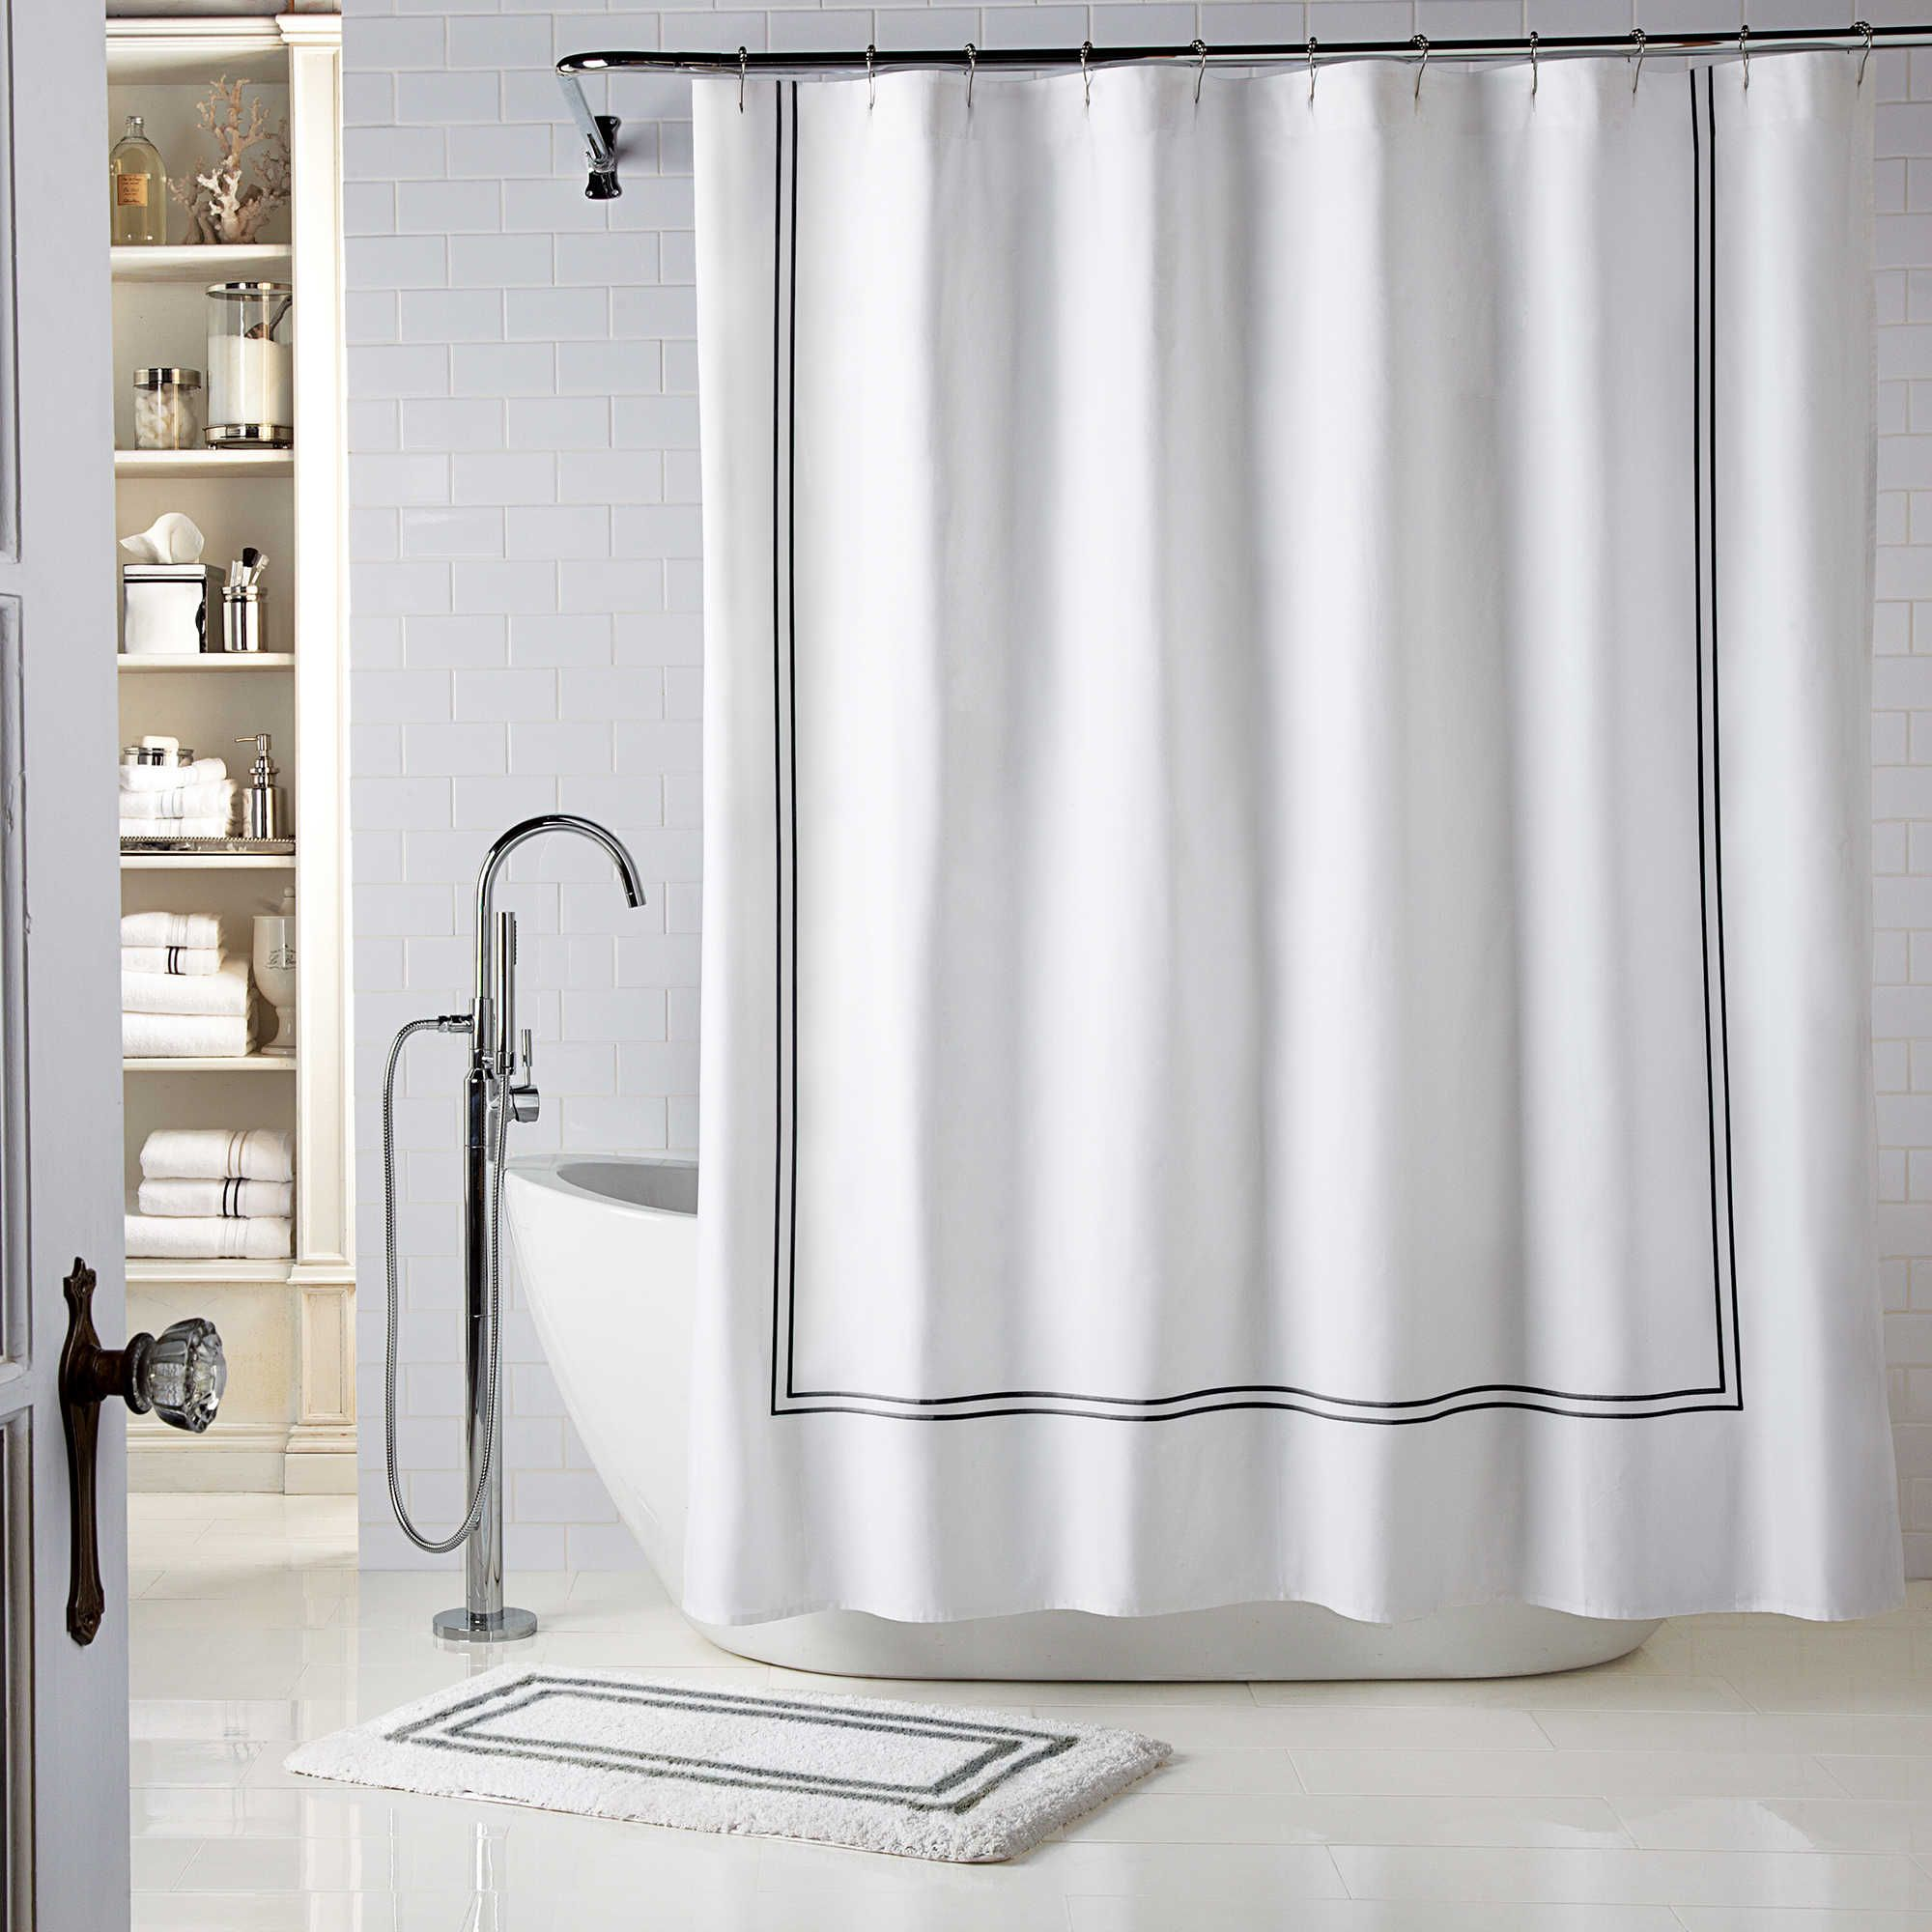 size shower diy hookless onlyshower stalls of rod curved curtain for impressive showersshower only campy full picture curtains stallshower concept stall